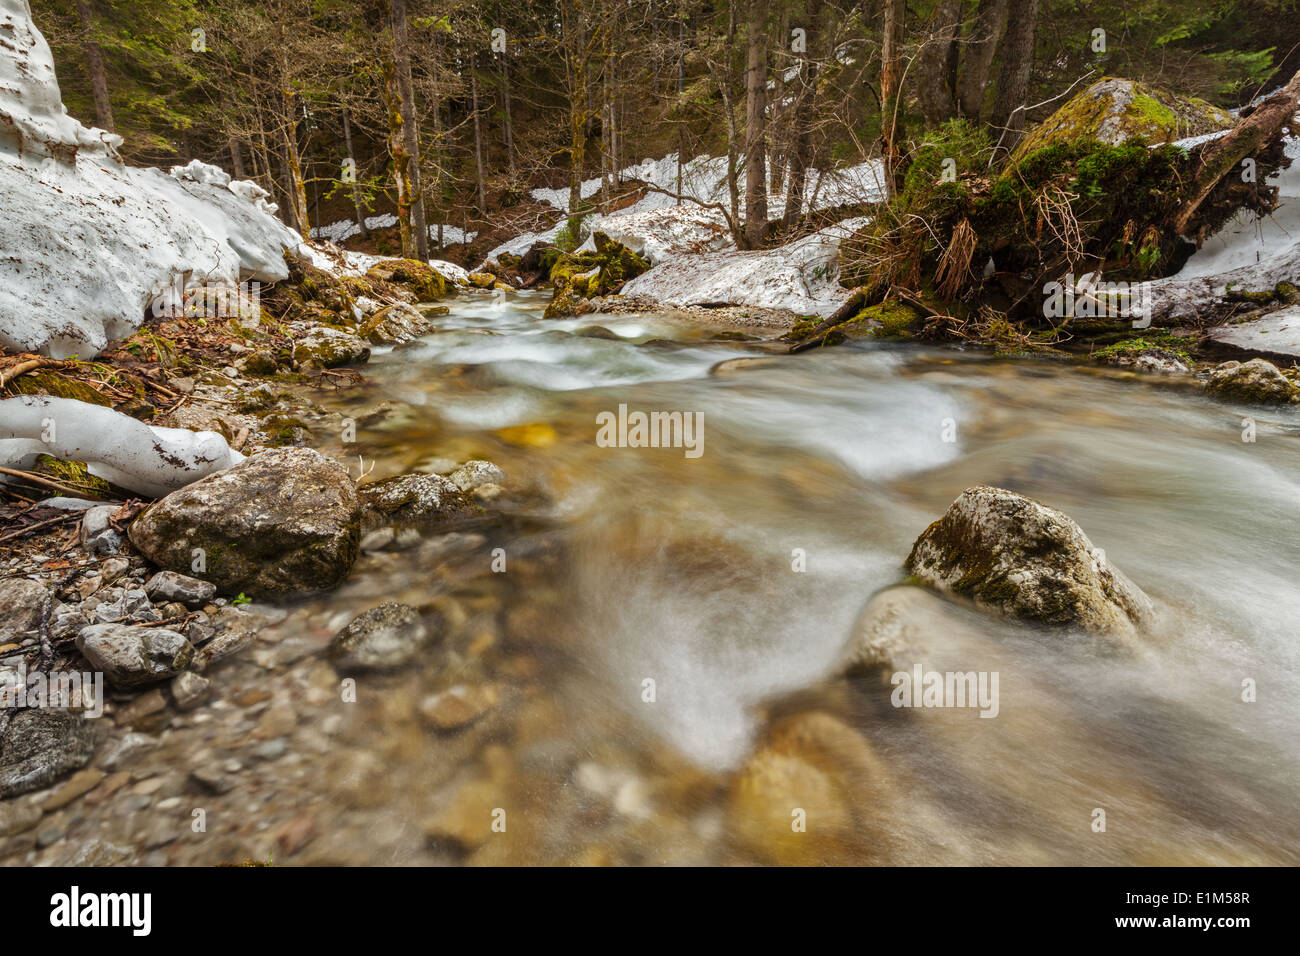 Cascade of Sibli-Wasserfall. Rottach-Egern, Bavaria, Germany Stock Photo